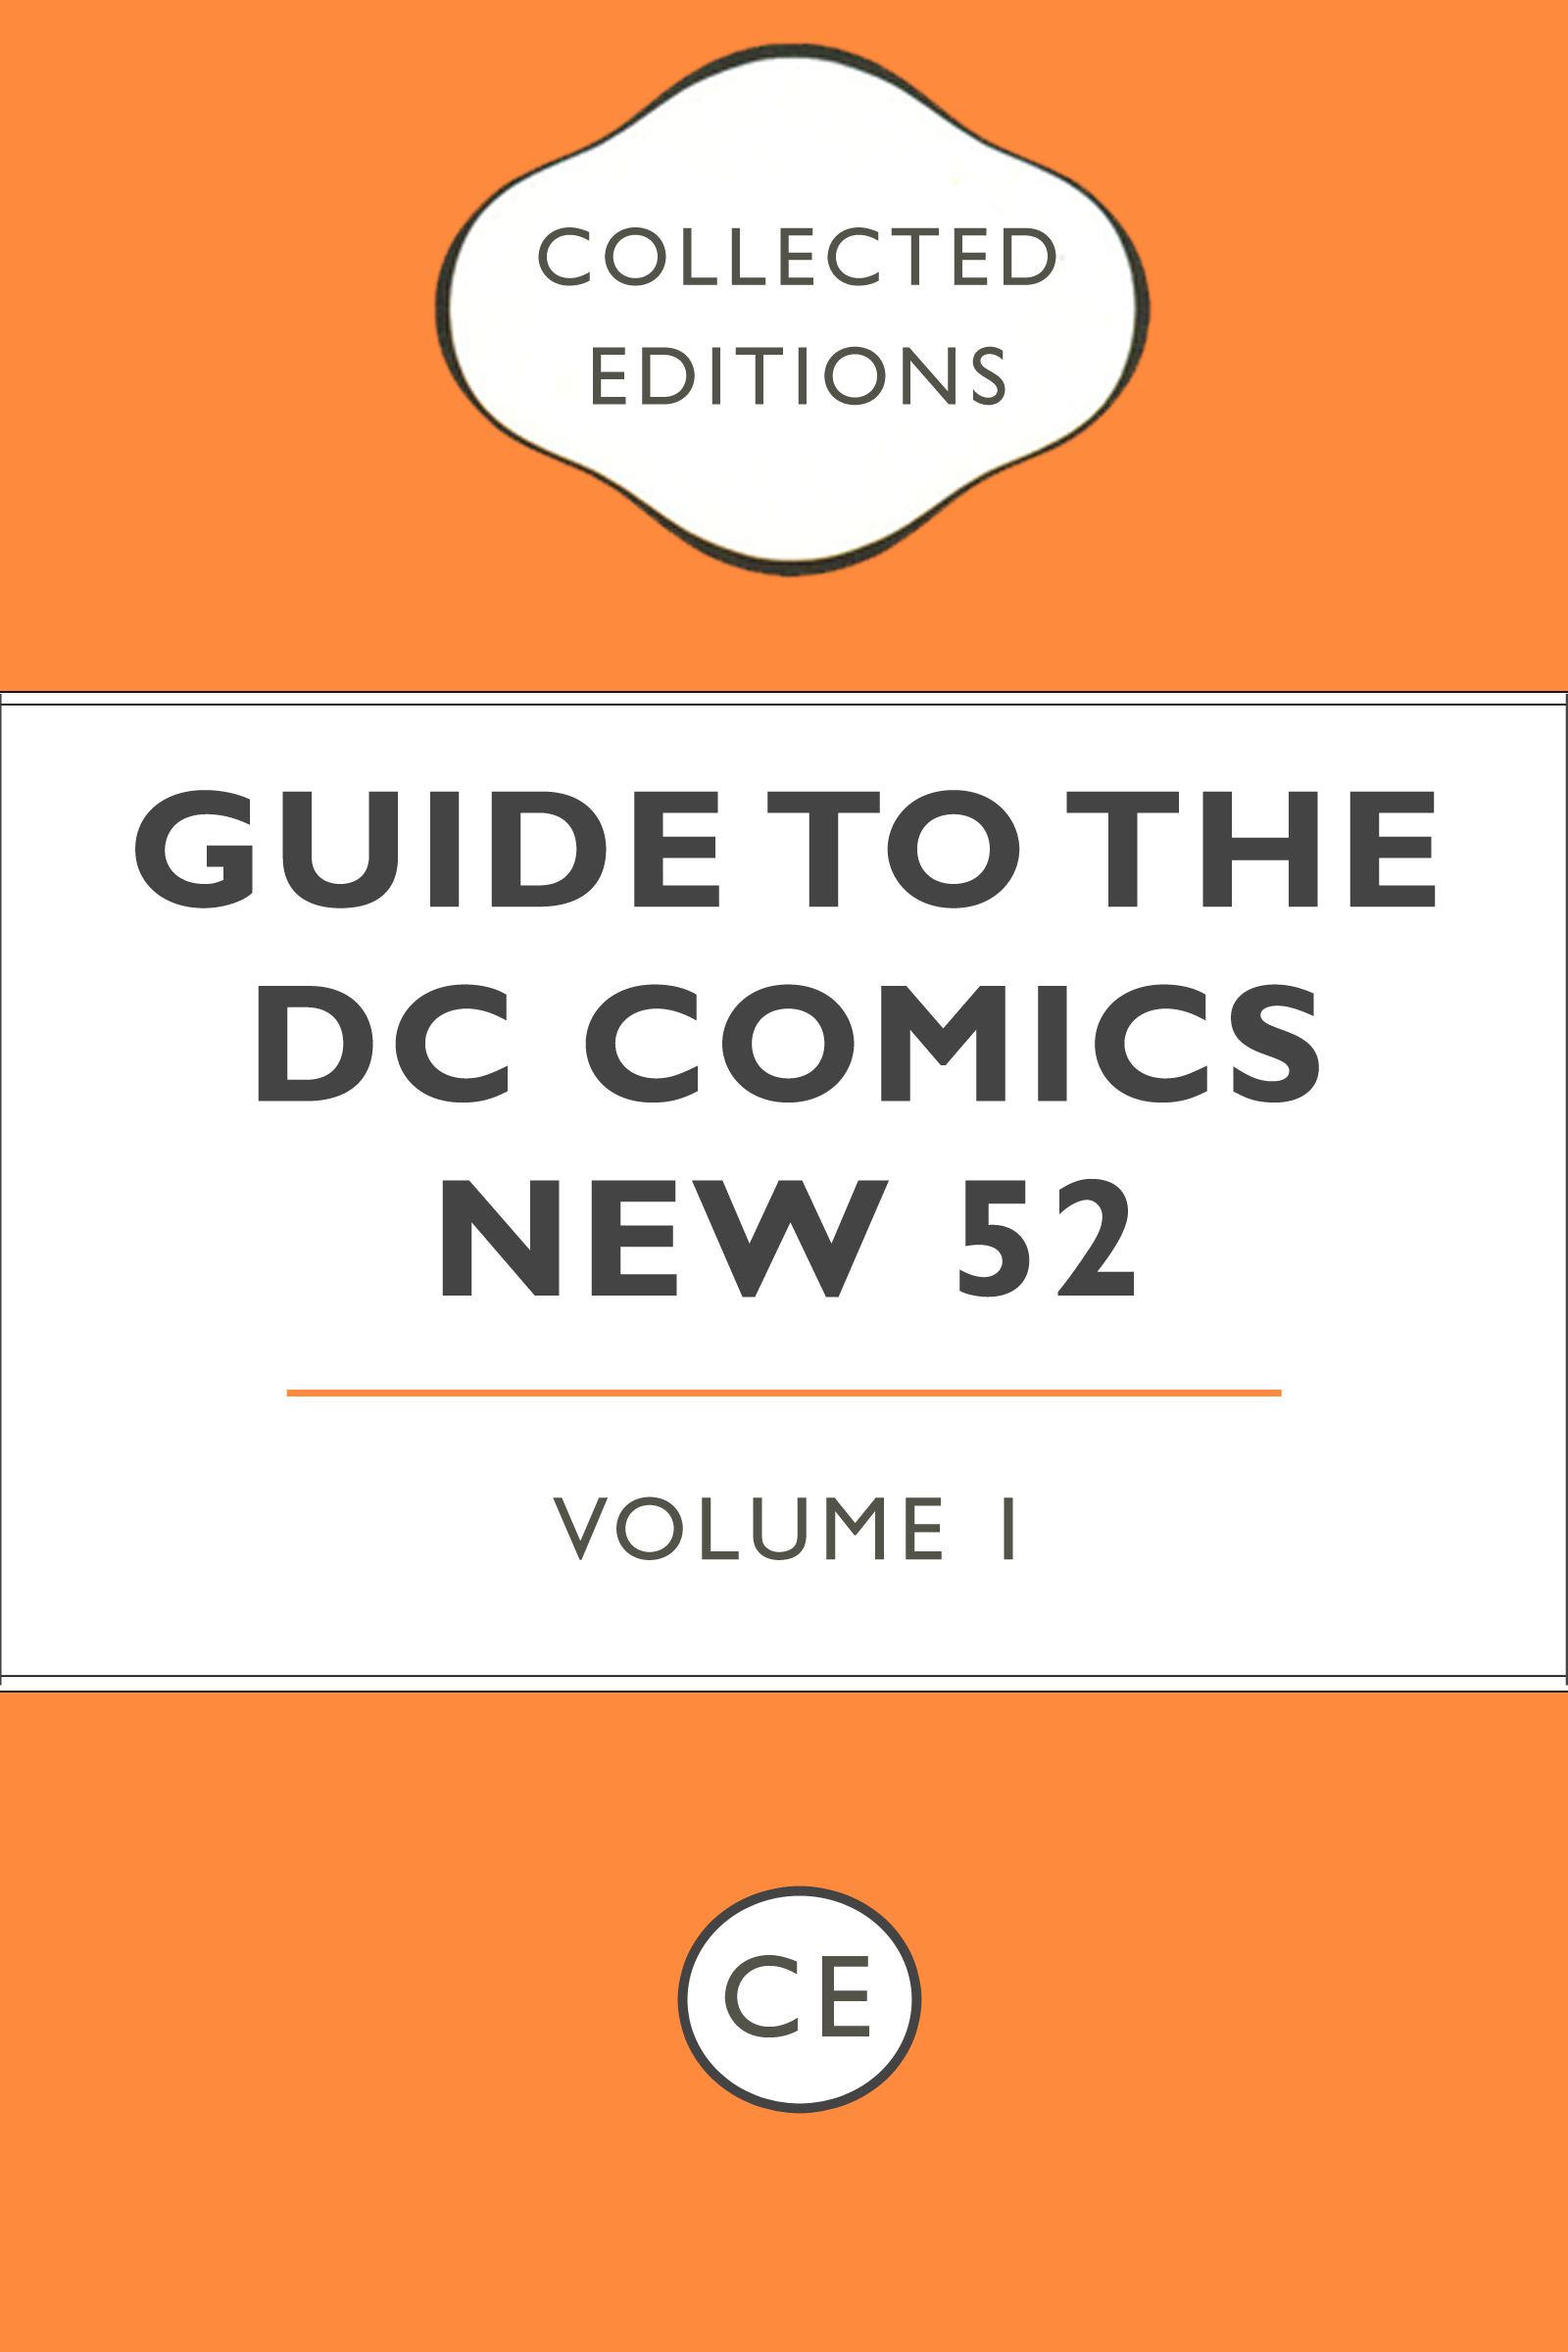 Collected Editions Guide to the DC Comics New 52 Vol. 1